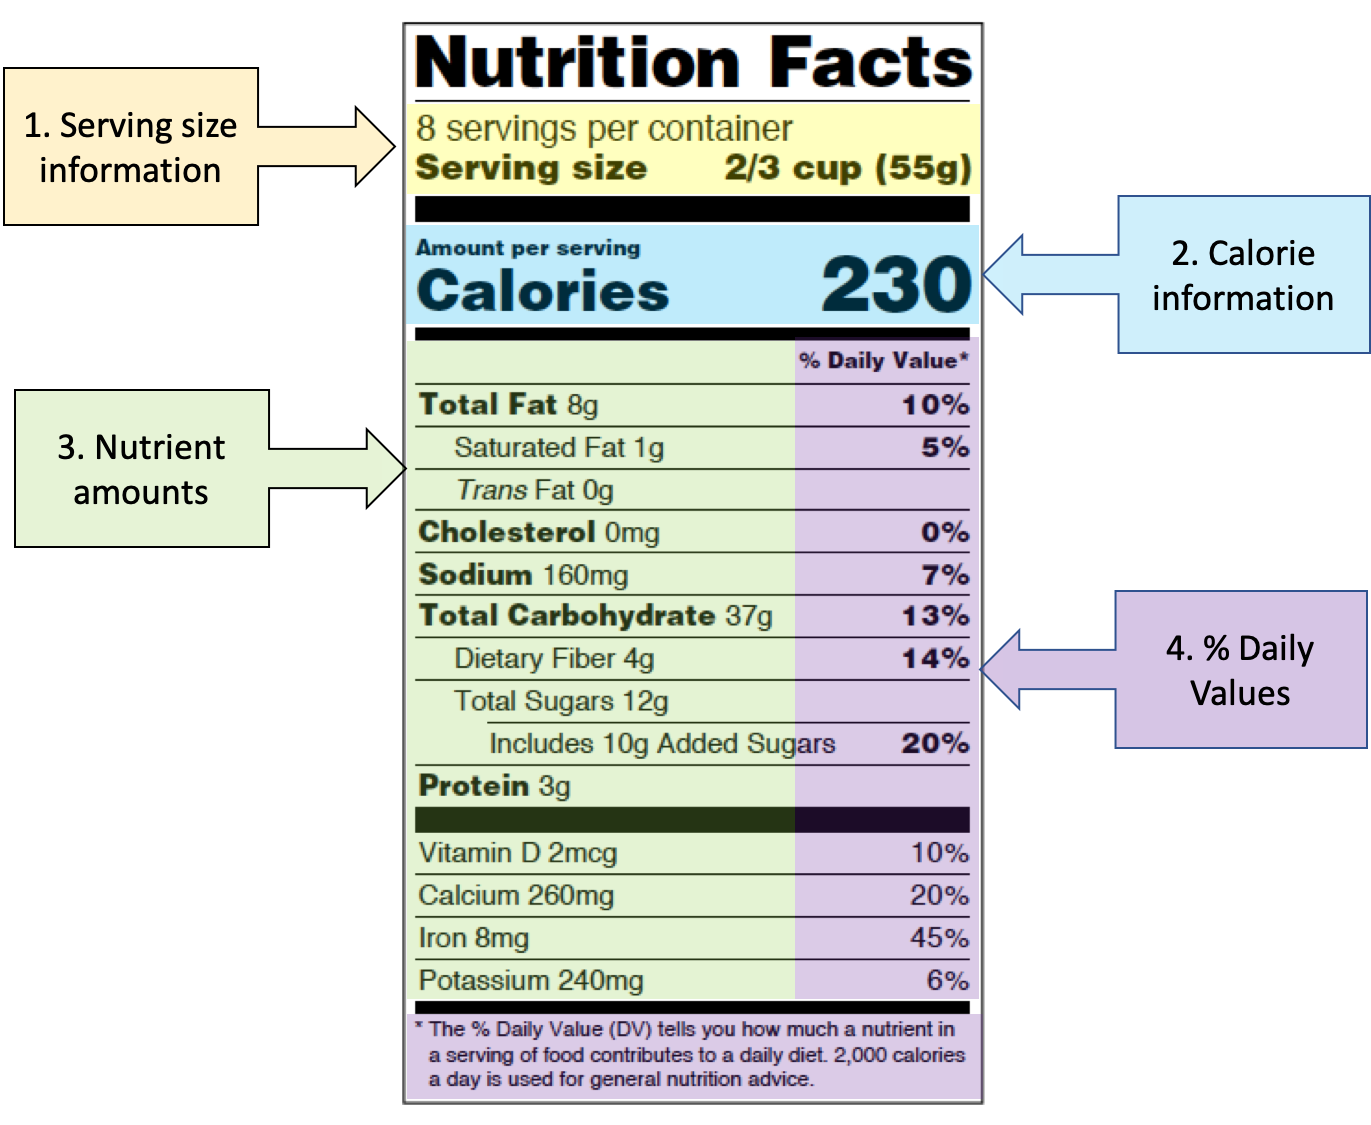 A Nutrition Facts panel is shown, with four main parts highlighted and labeled. The serving size information is highlighted in yellow; the calorie information is highlighted in blue, the nutrient amounts section is highlighted in green, and the % Daily Value section is highlighted in purp